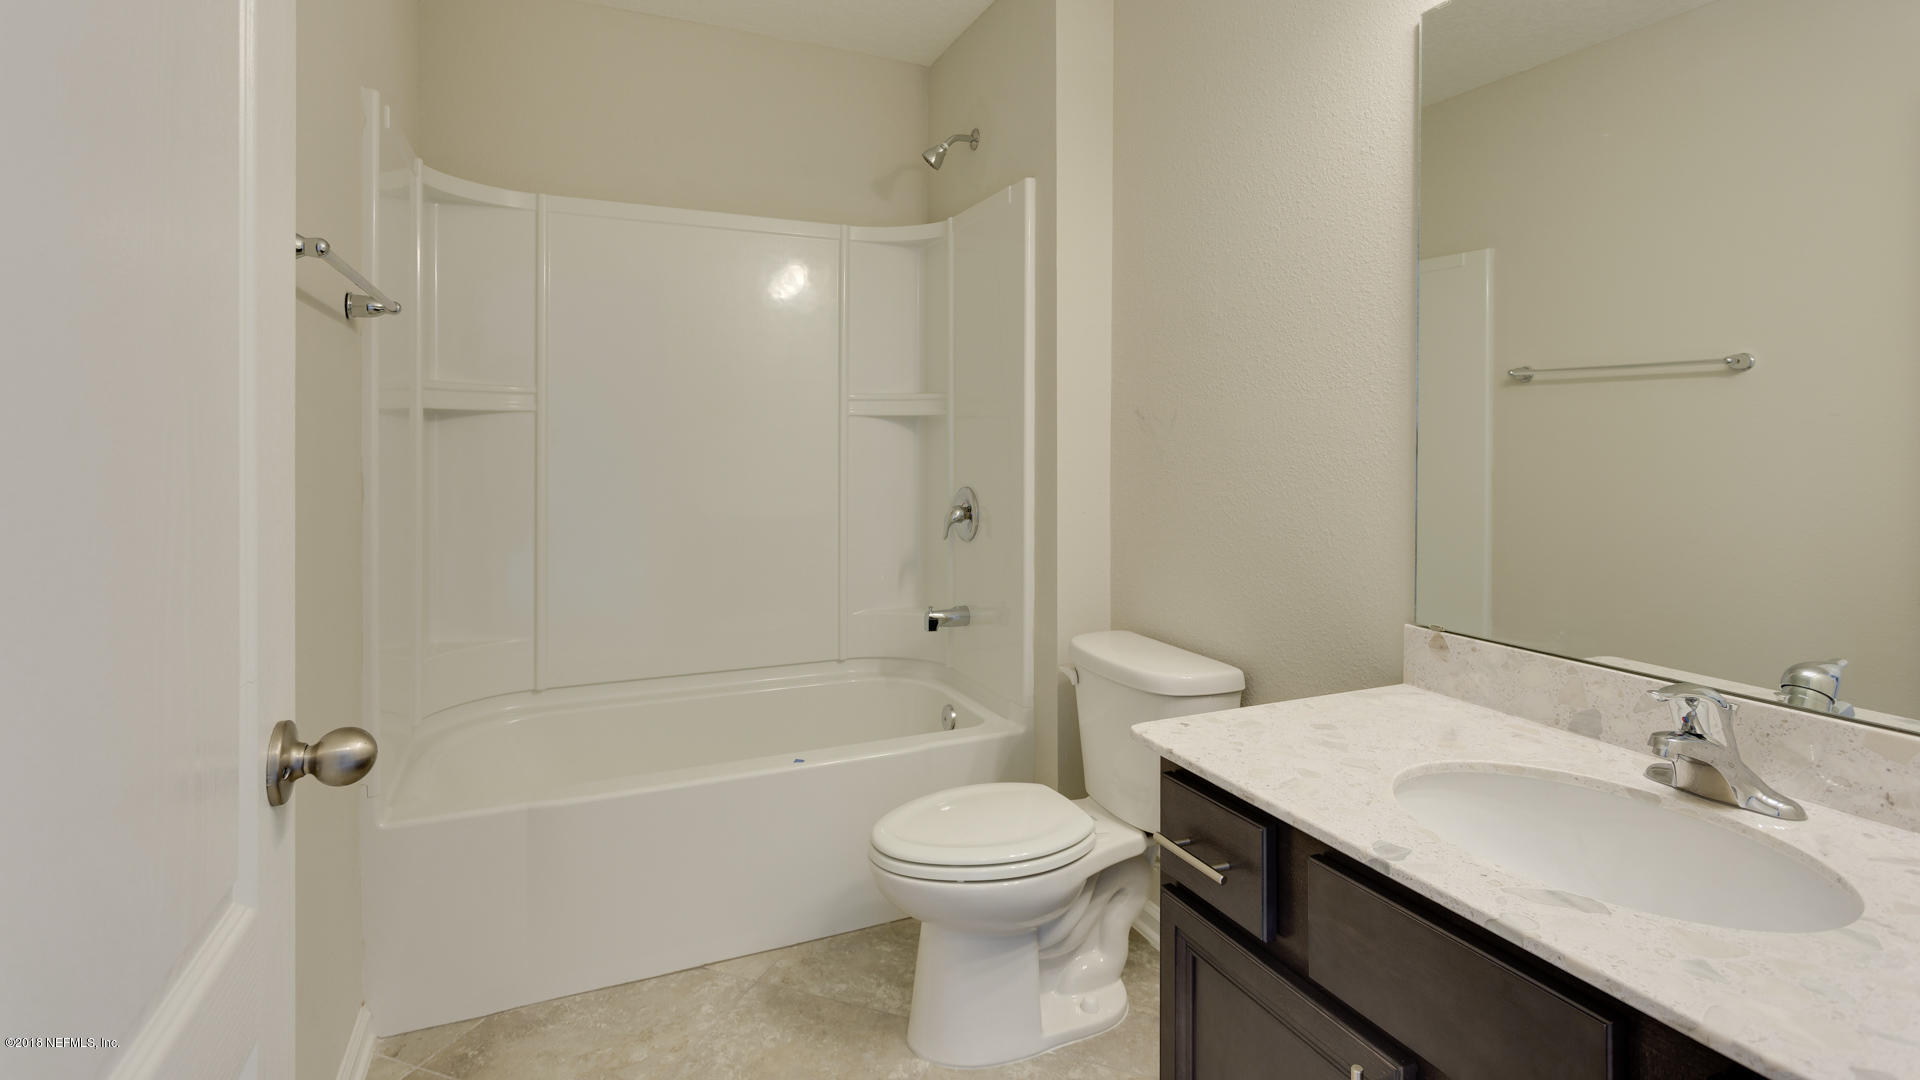 547 FOX WATER, ST AUGUSTINE, FLORIDA 32086, 4 Bedrooms Bedrooms, ,2 BathroomsBathrooms,Residential - single family,For sale,FOX WATER,927845